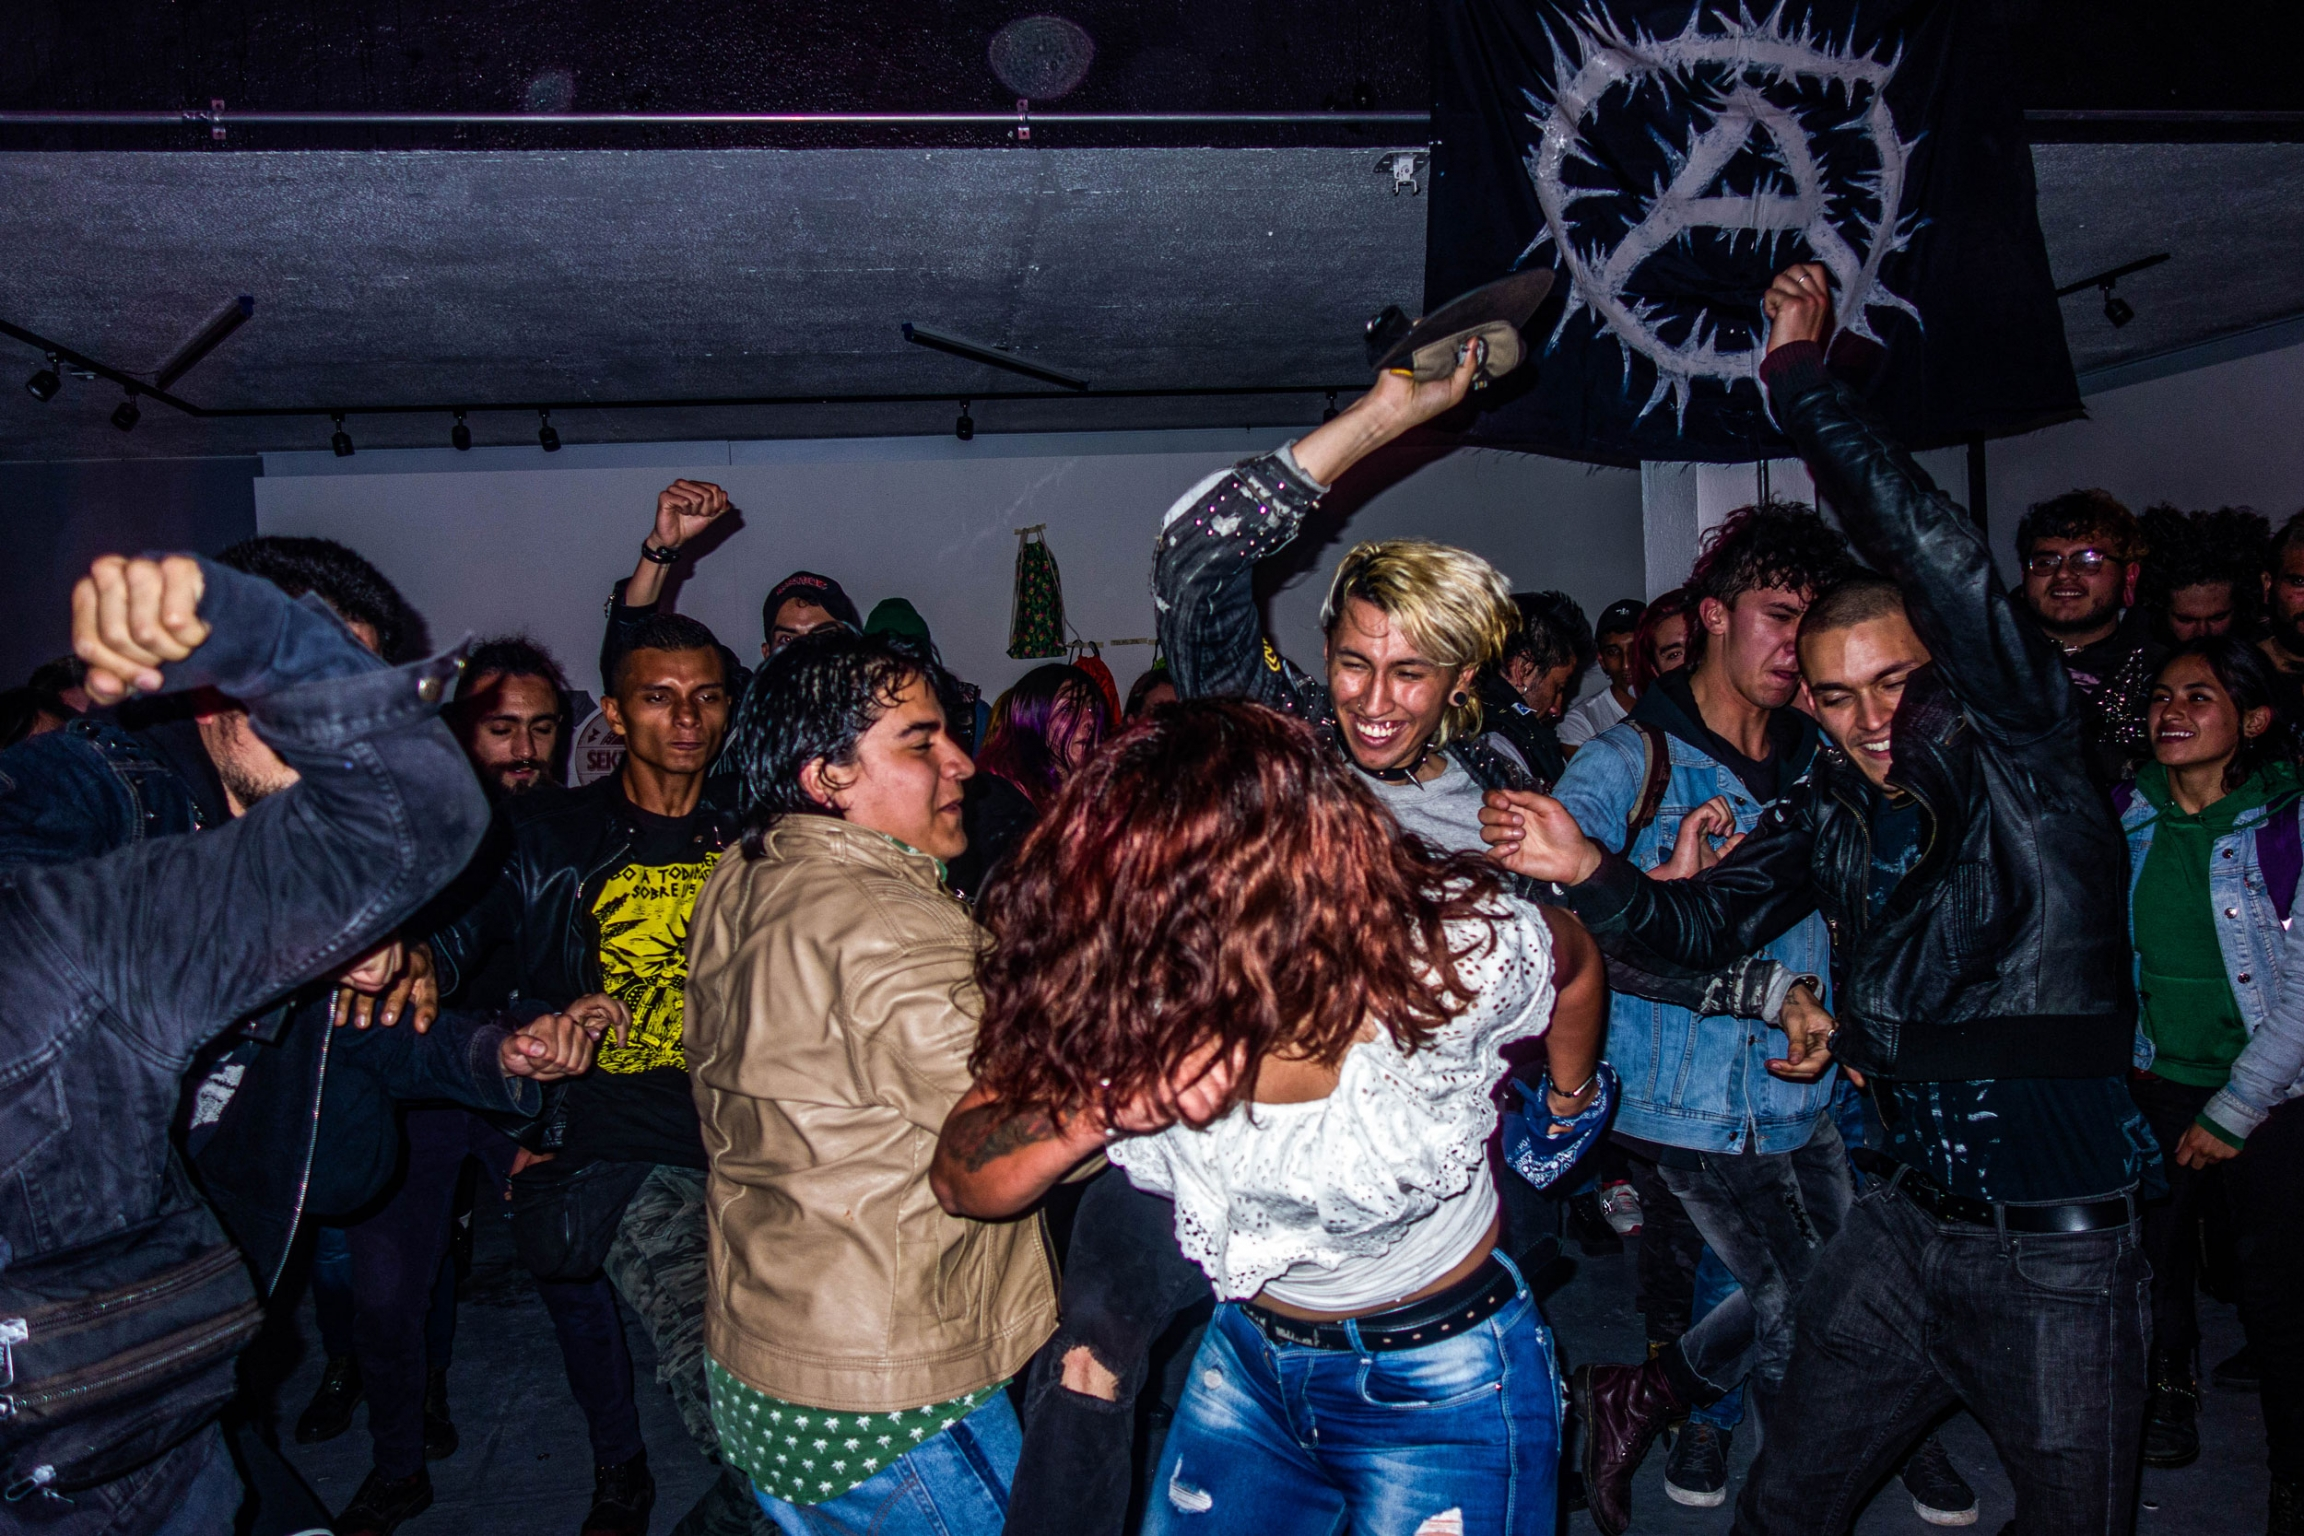 Concert-goers are shown throwing their bodies around at each other at a punk concert.